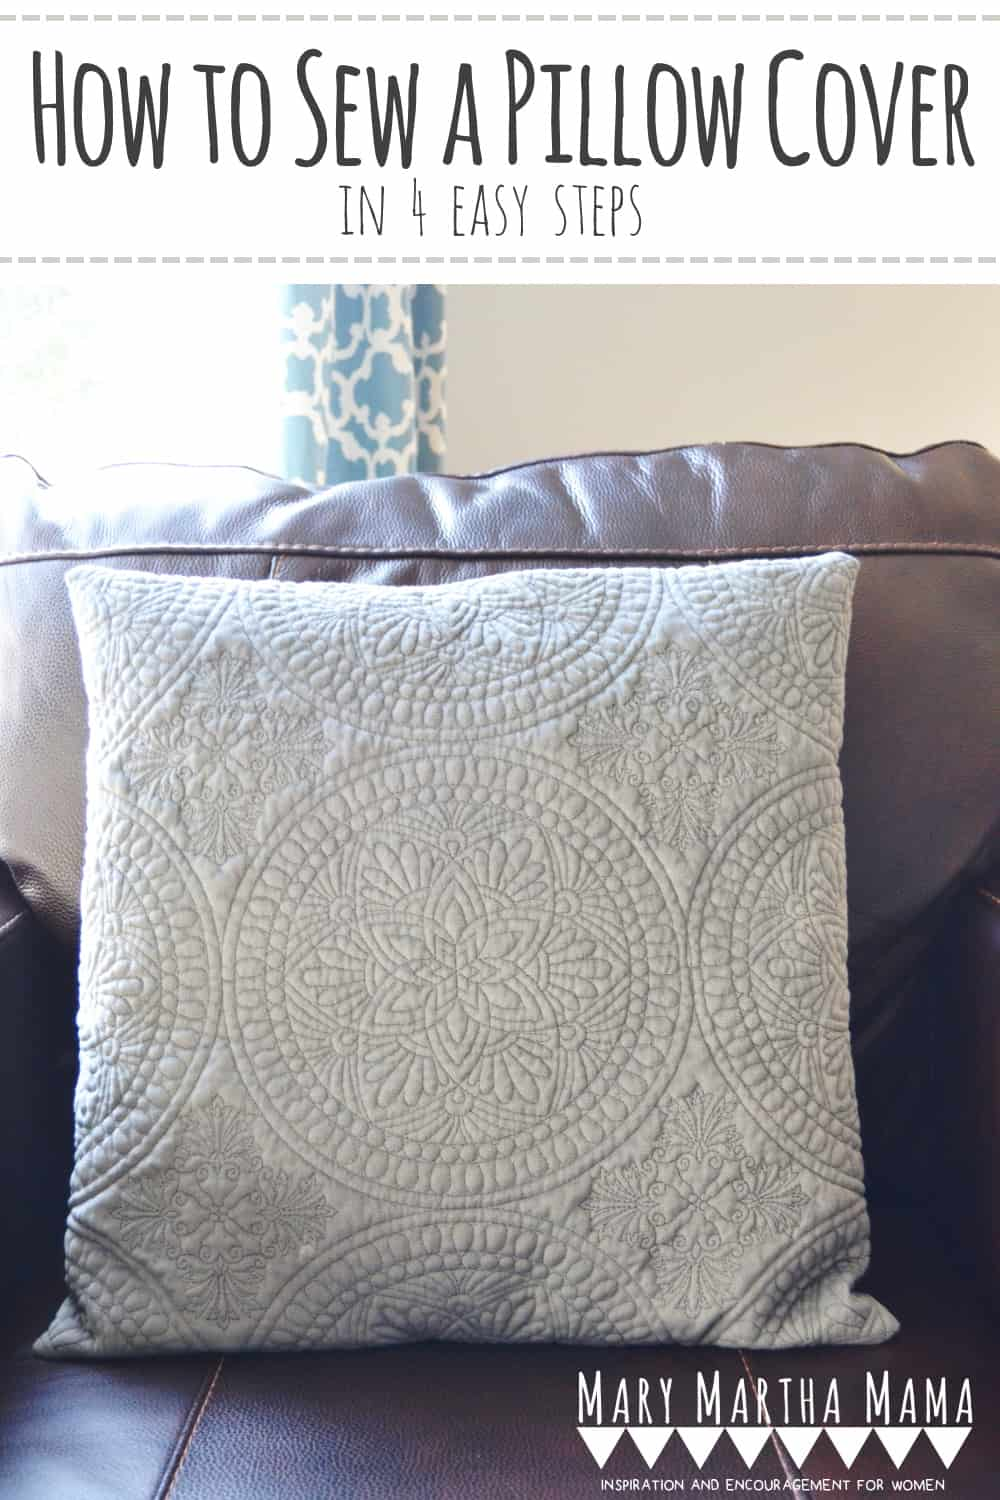 How to Sew a Pillow Cover in 4 Easy Steps- You can make your own throw pillow covers following this super simple tutorial. #howtosewapillowcover #howtosewapillow #sewingprojects